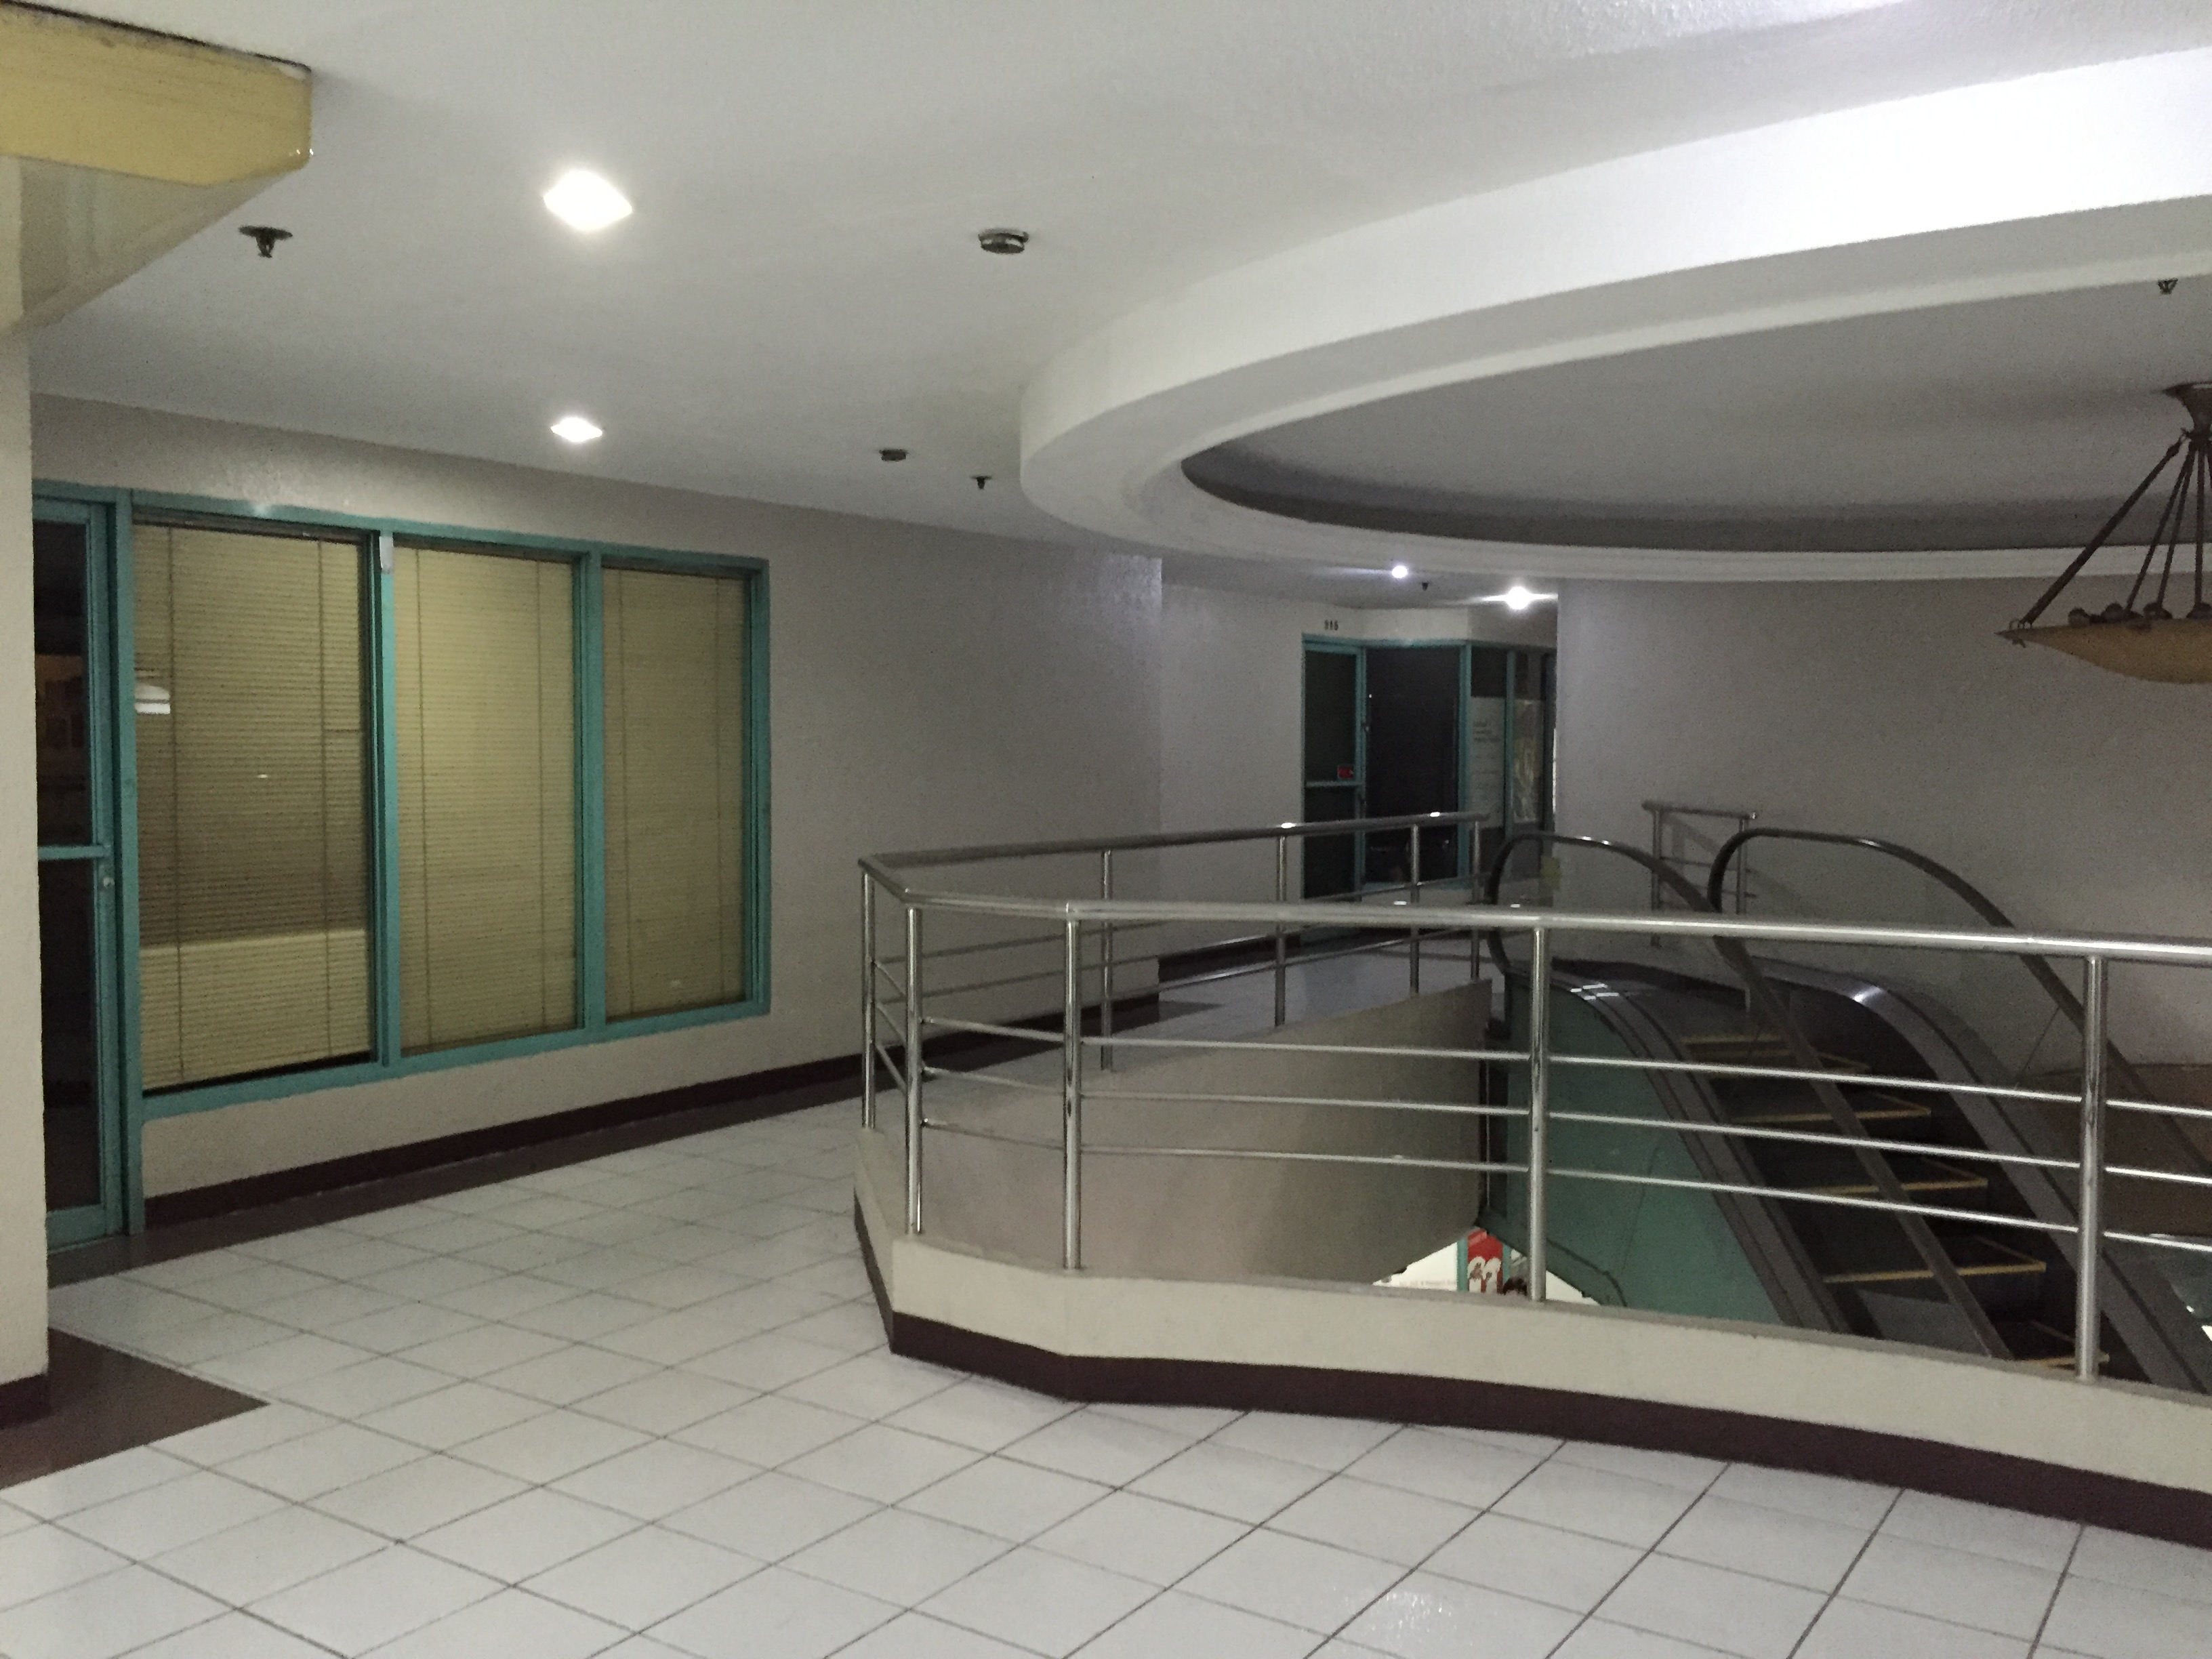 Katipunan Quezon City Commercial Space for Lease – Prince David